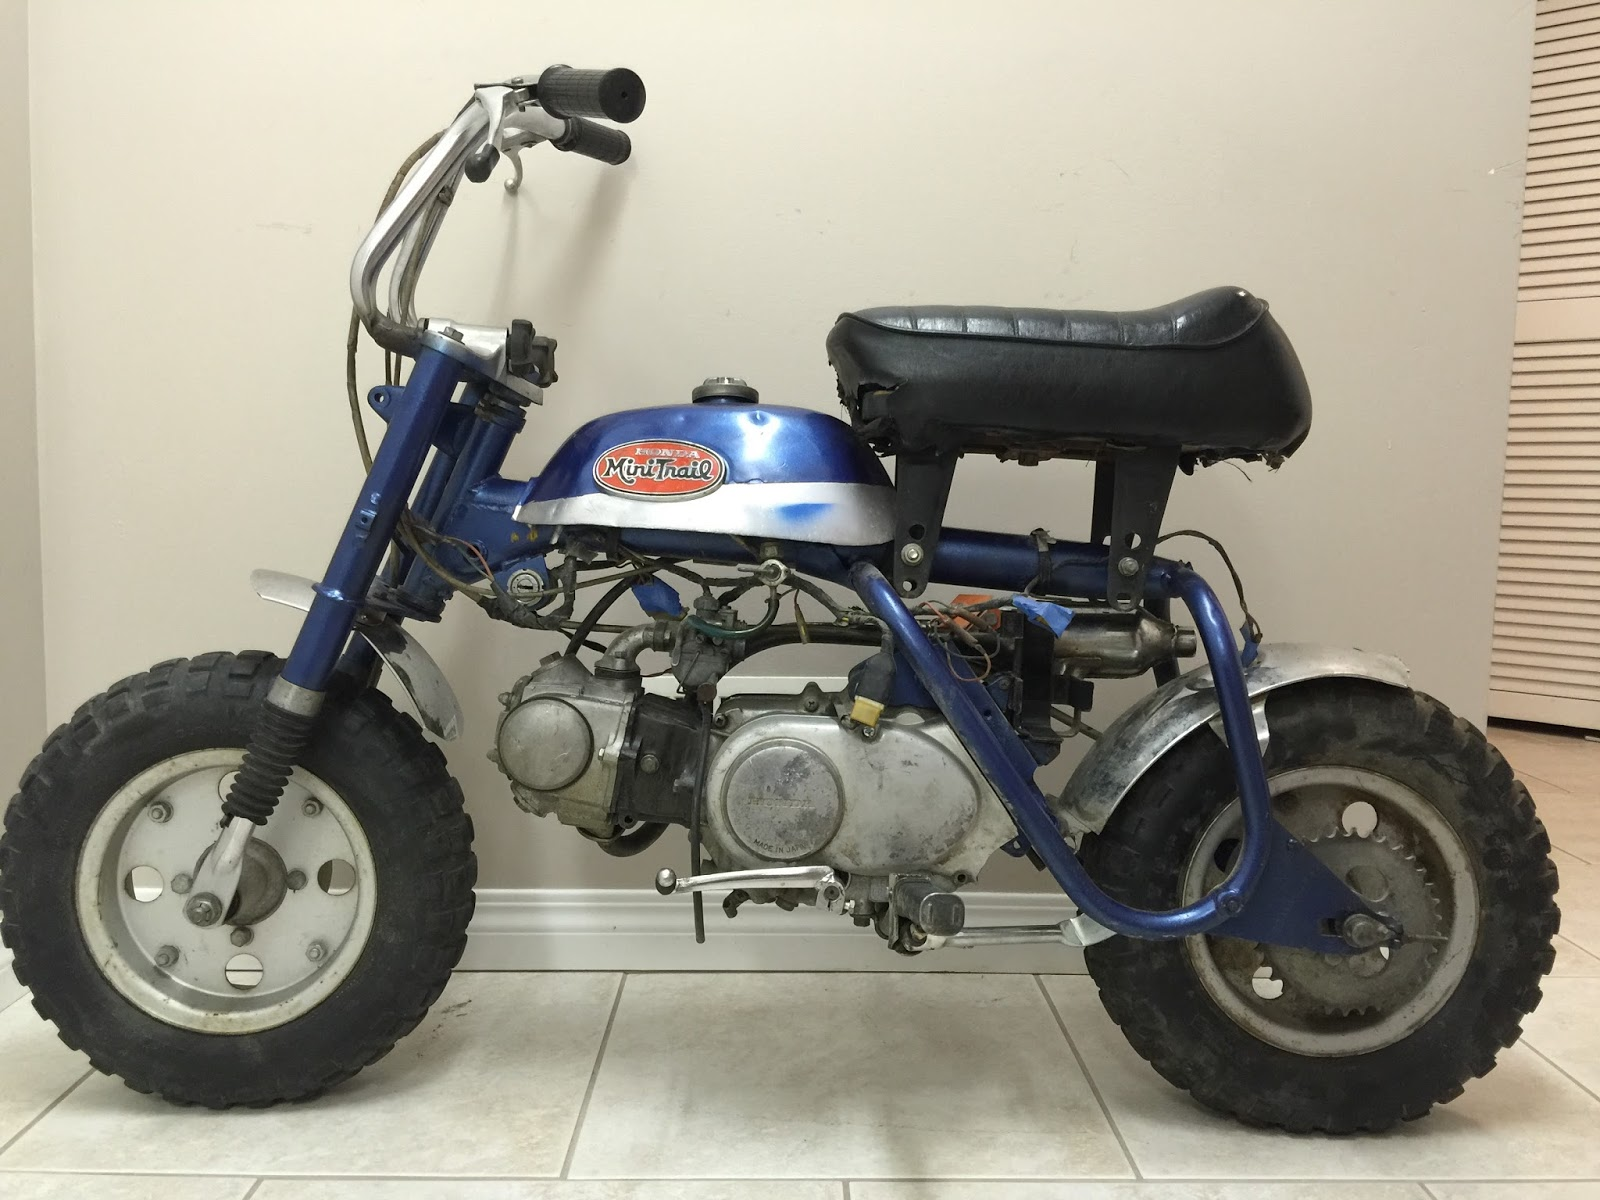 Its was an early production frame and motor (a.k.a.: Silver tag) Frame VIN:  Z50A-123843 / Engine VIN: Z50AE-123327 (K1 models begin at # 120001 -  Produced ...